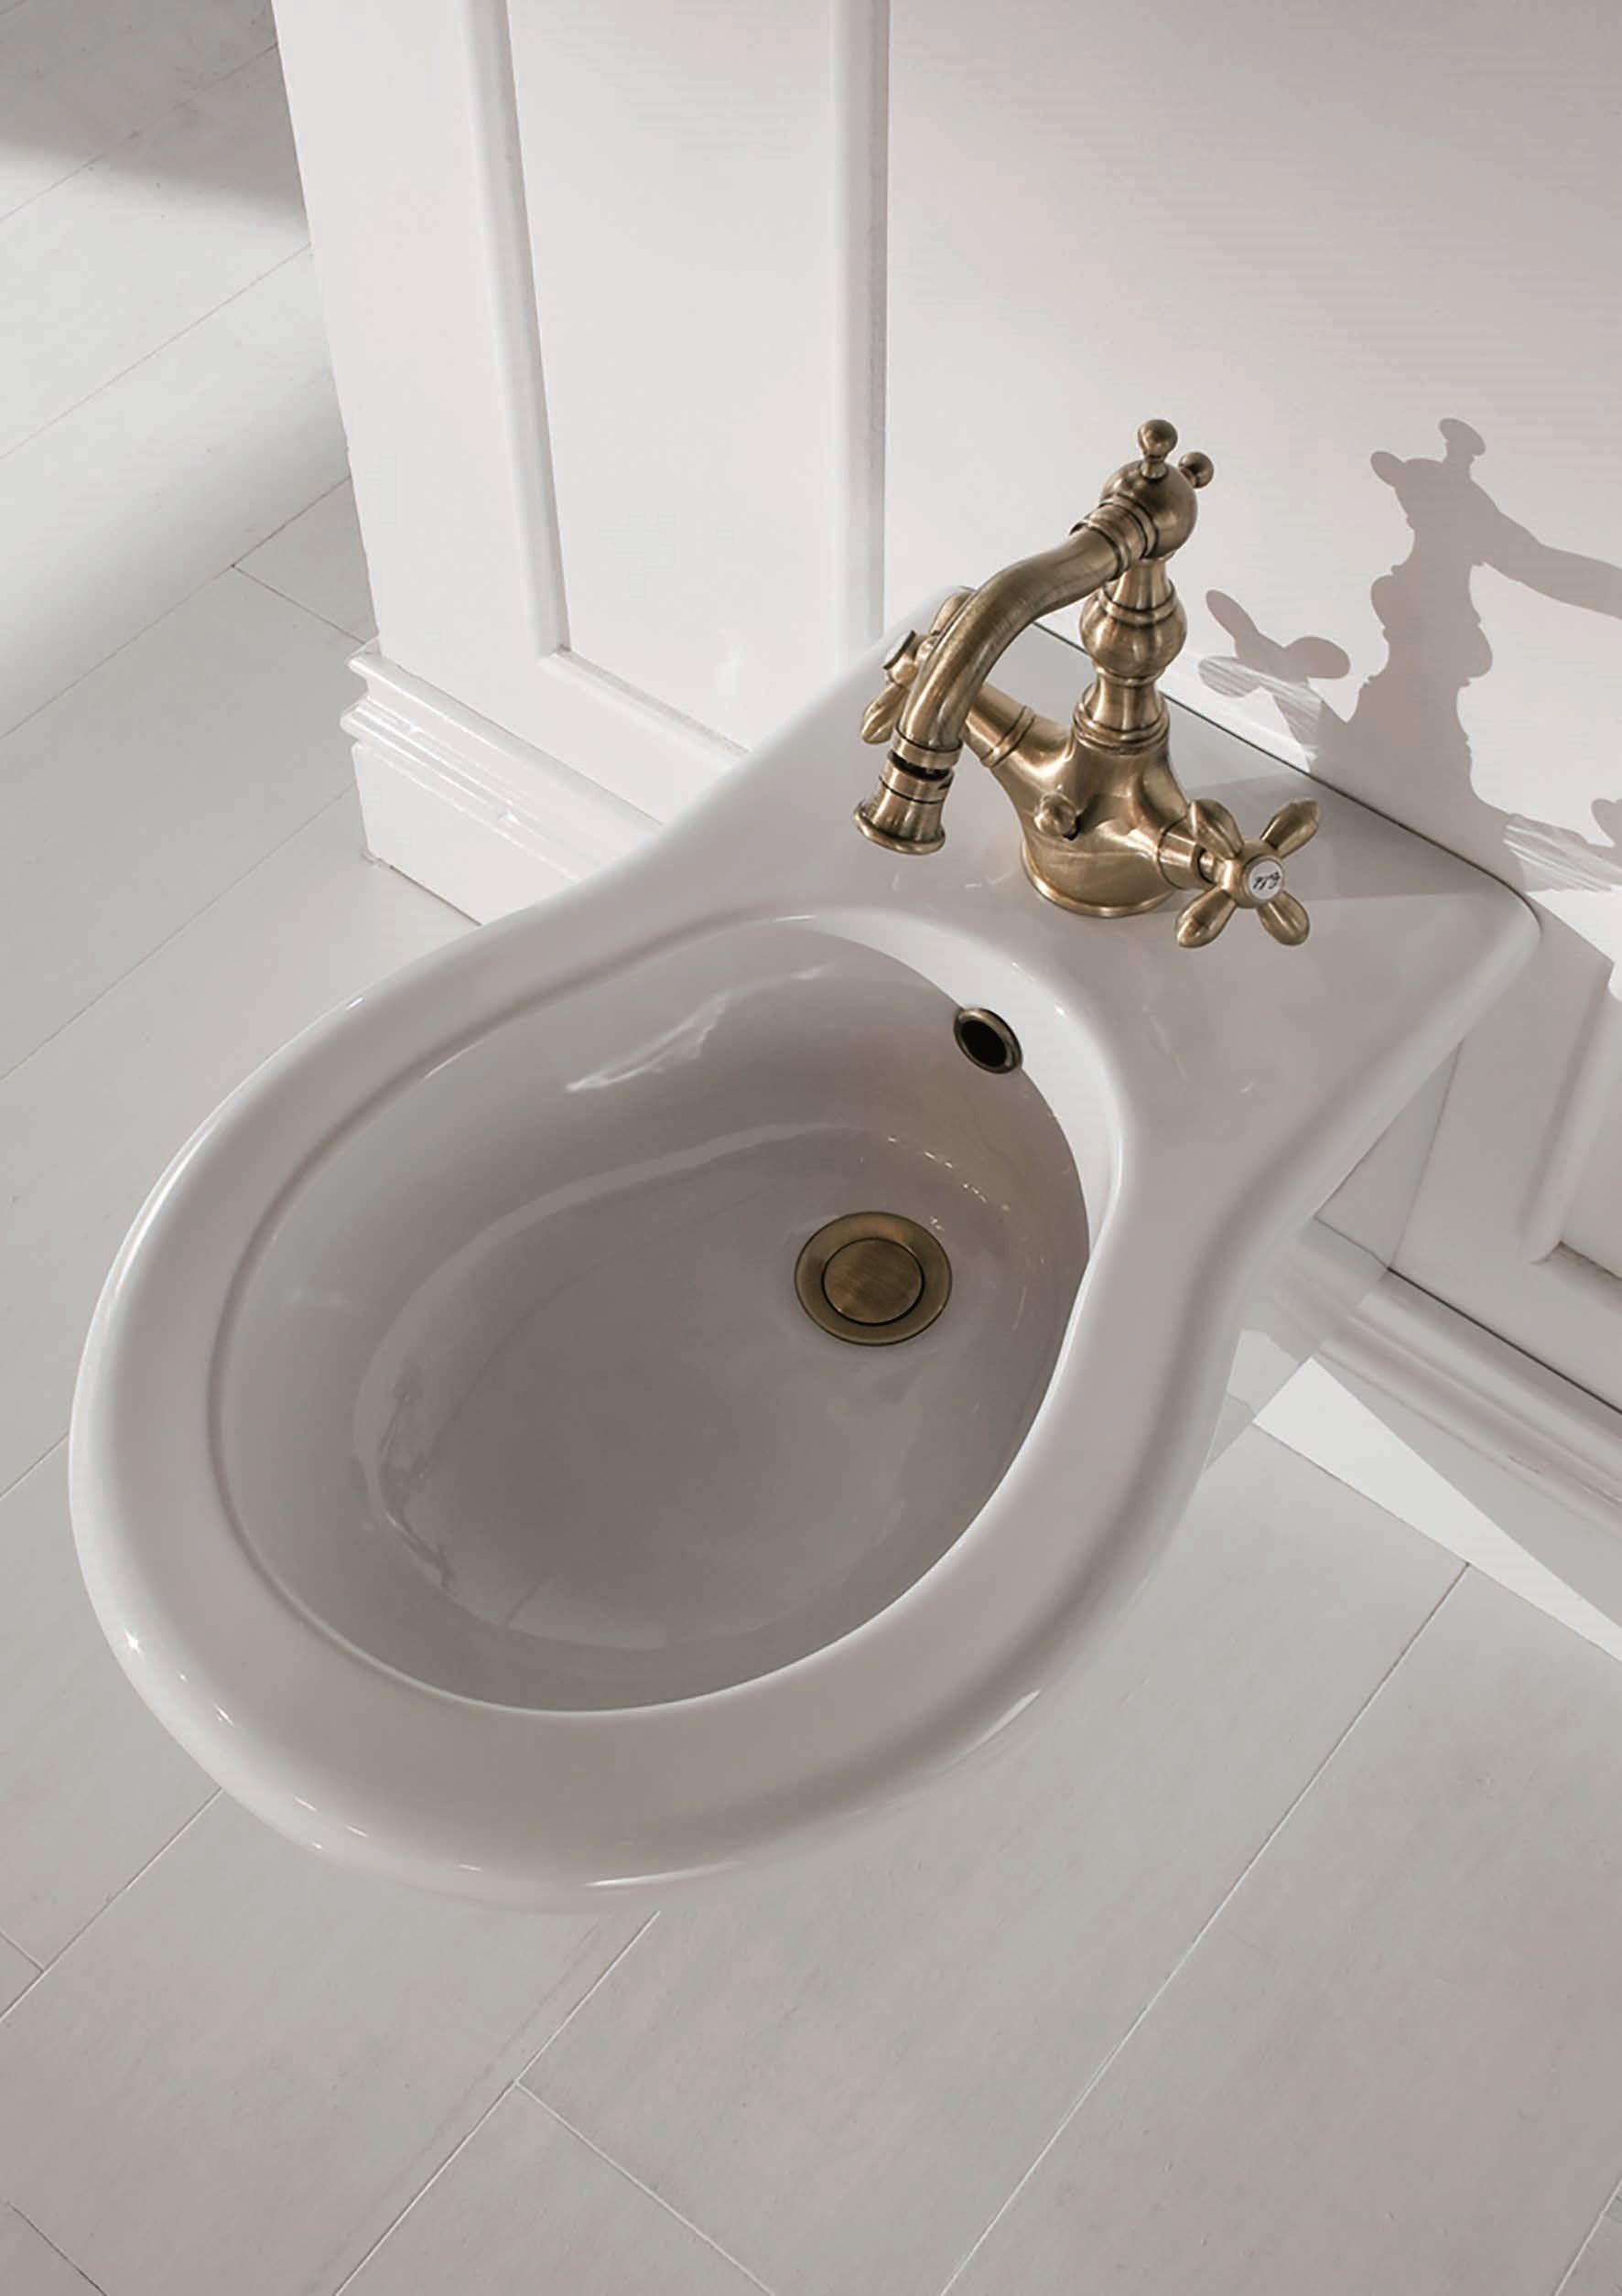 Bidet Richmond Gaiamobili Bathroom Bagno Arredobagno Interior